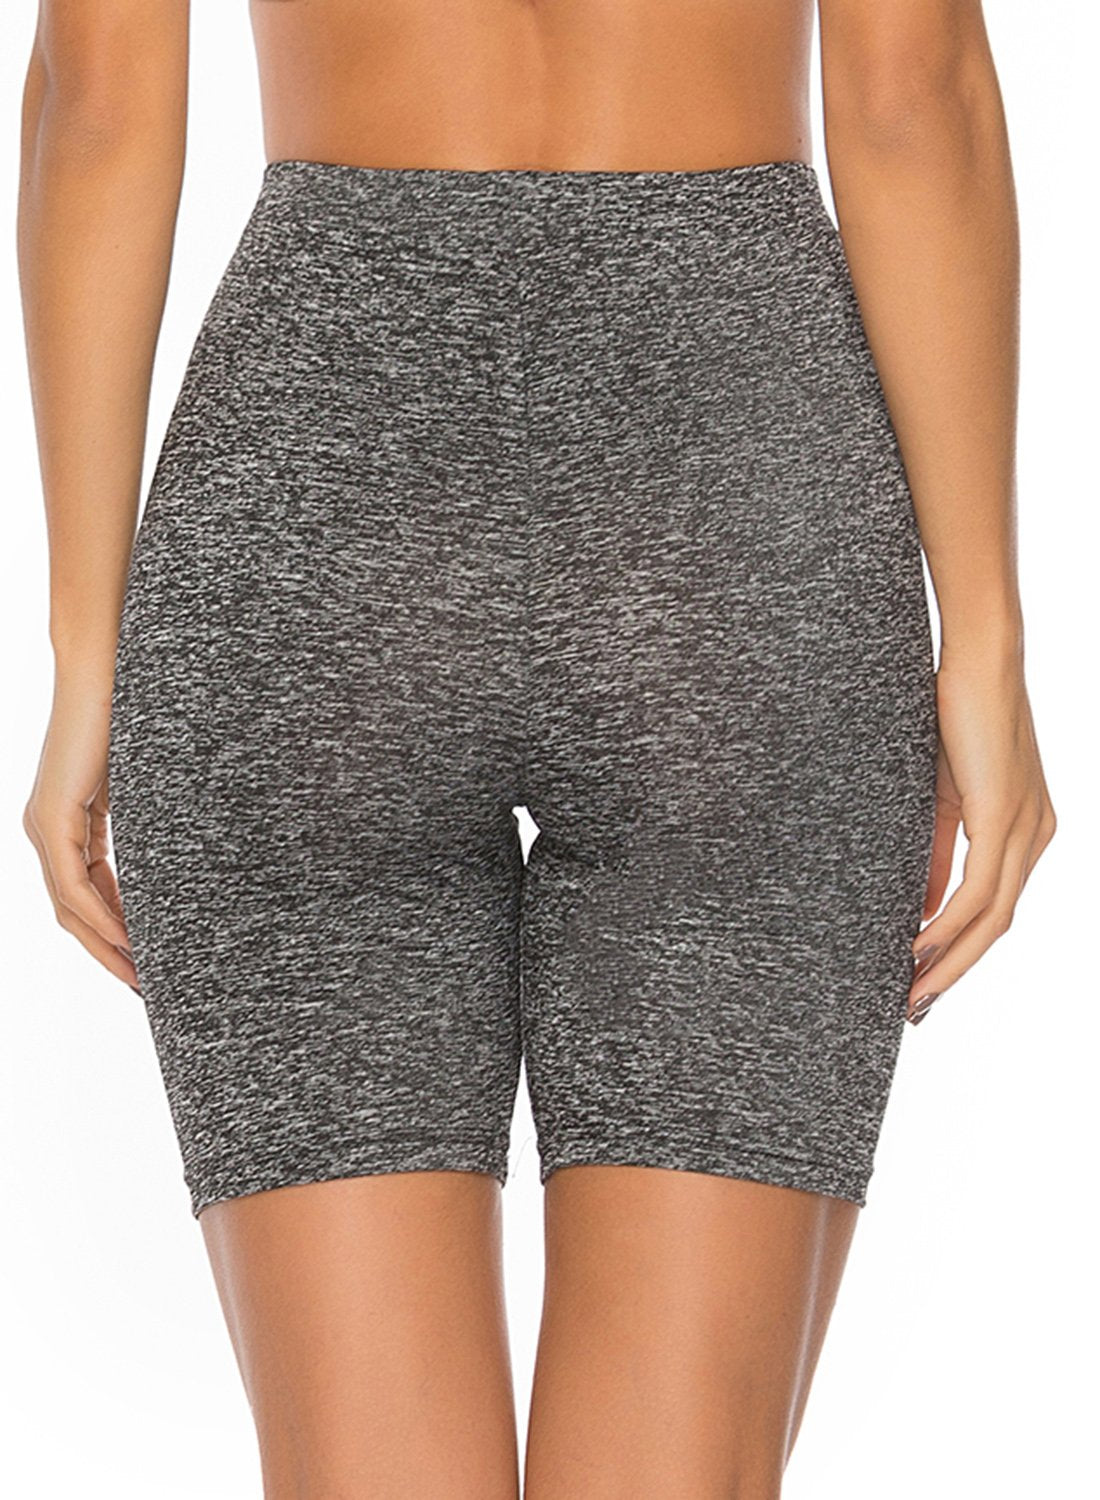 Solid Color Comfy Yoga Shorts